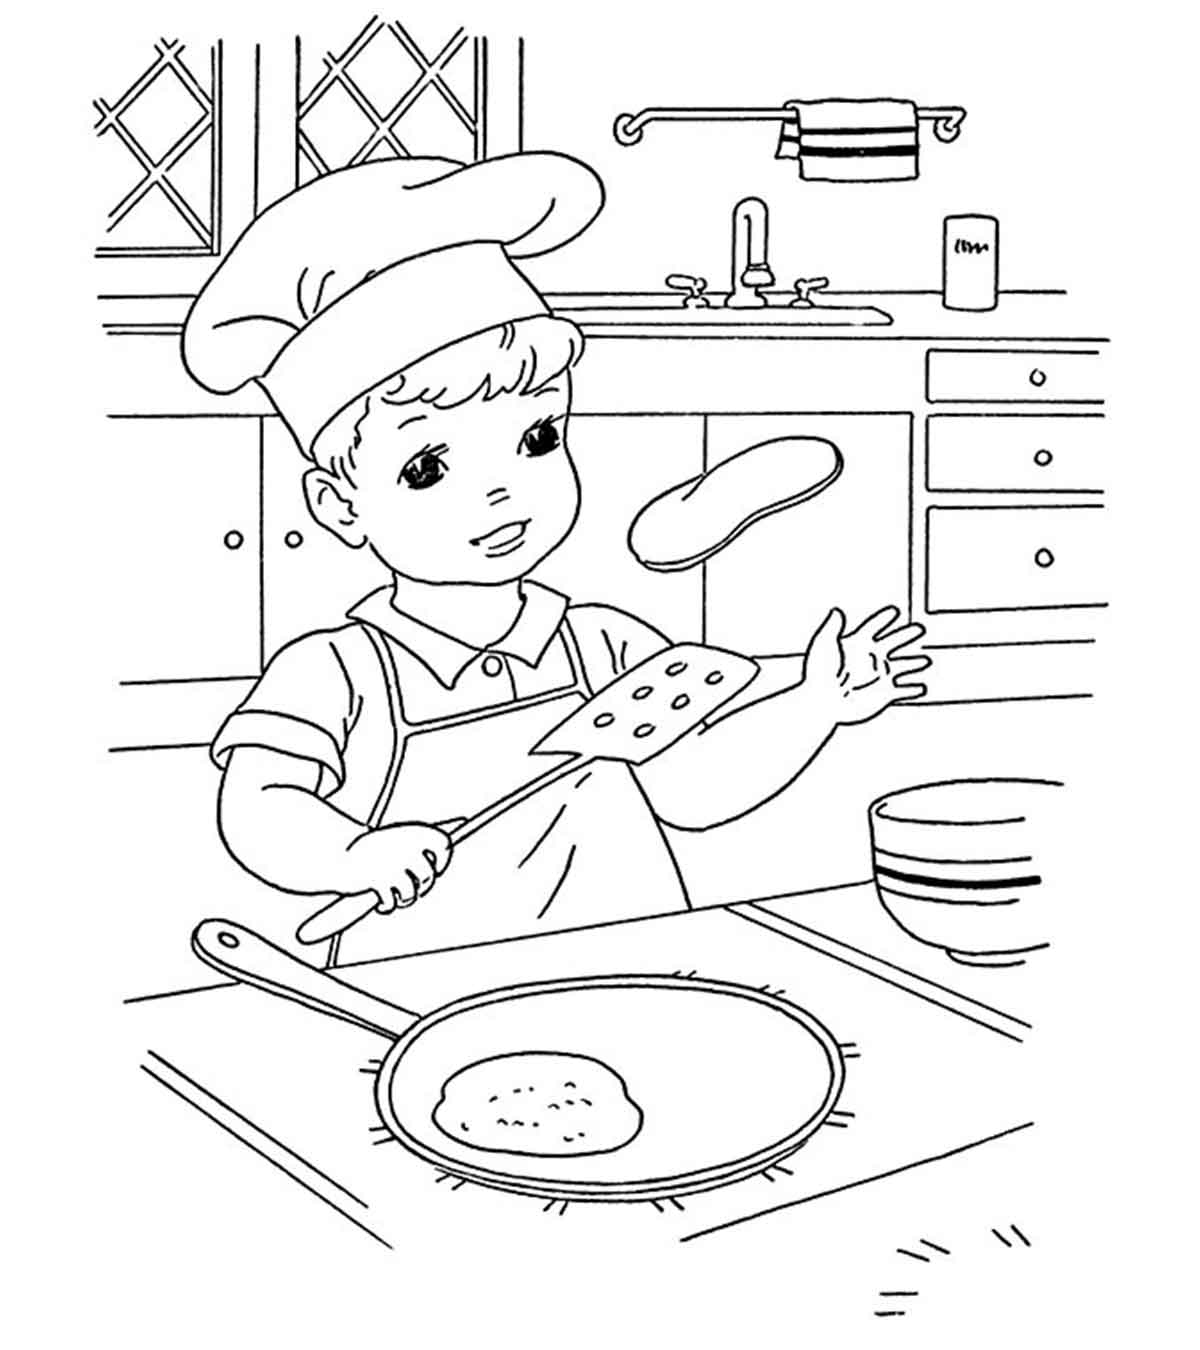 Chef With Some Food - Free Coloring Pages For Kids - Printable ... | 1350x1200